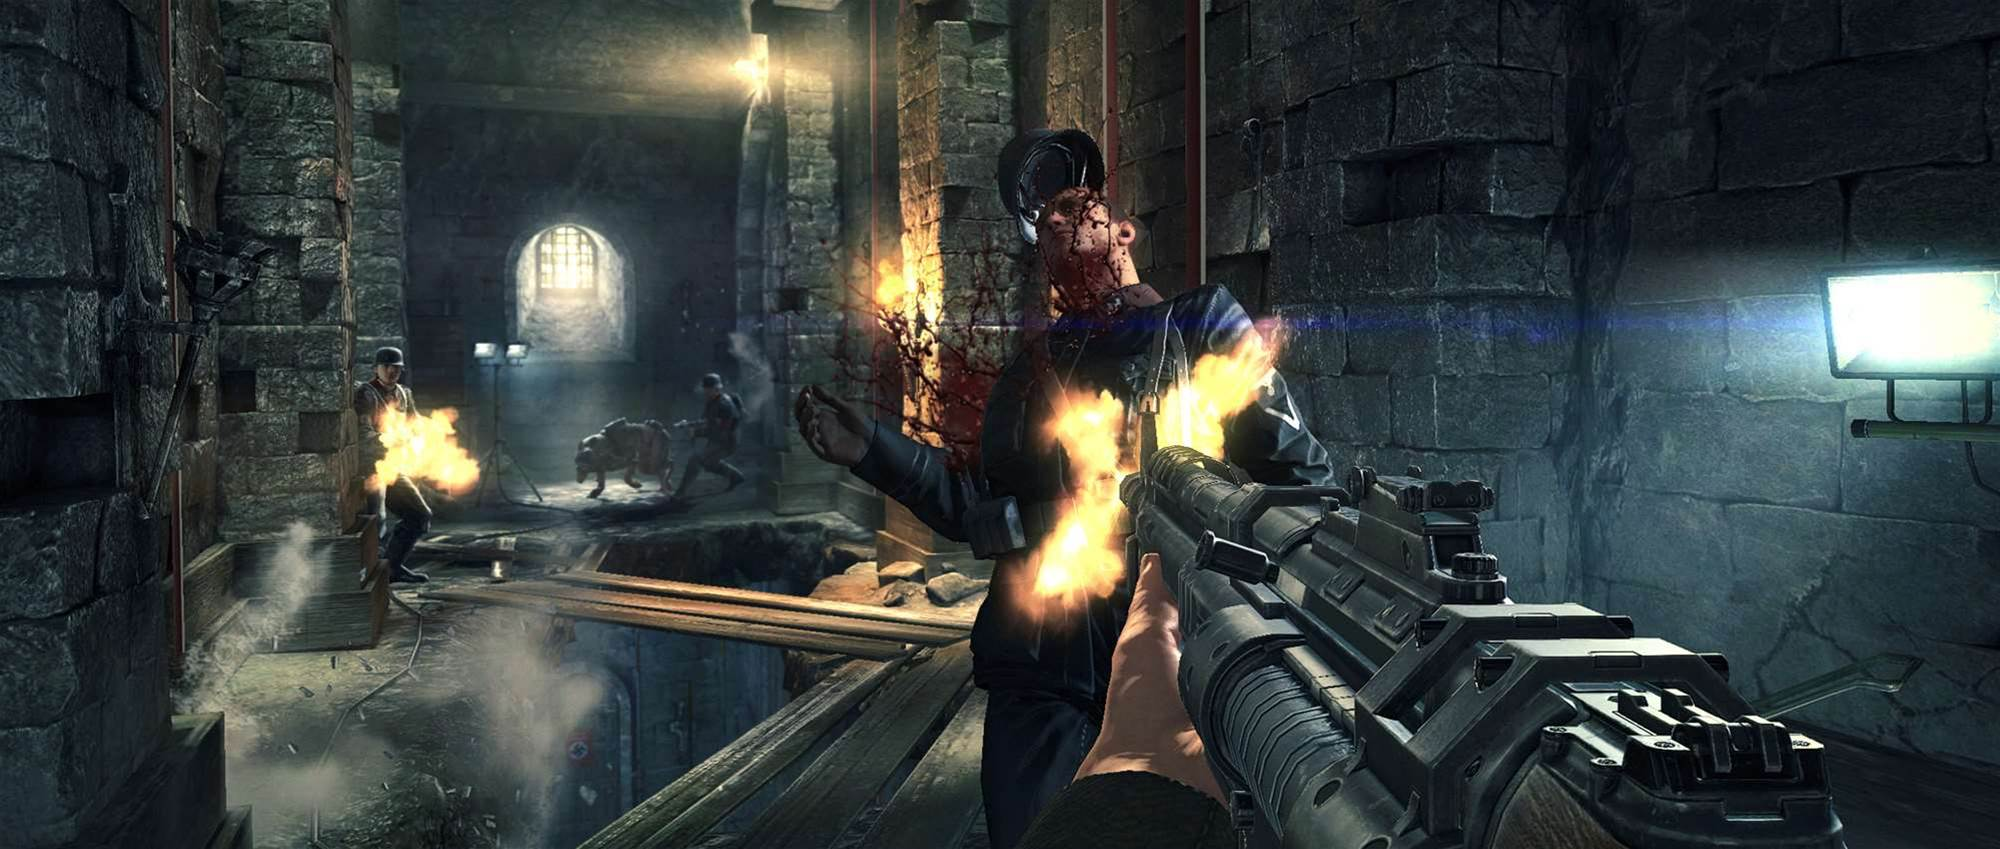 Four new screens from Wolfenstein: The New Order